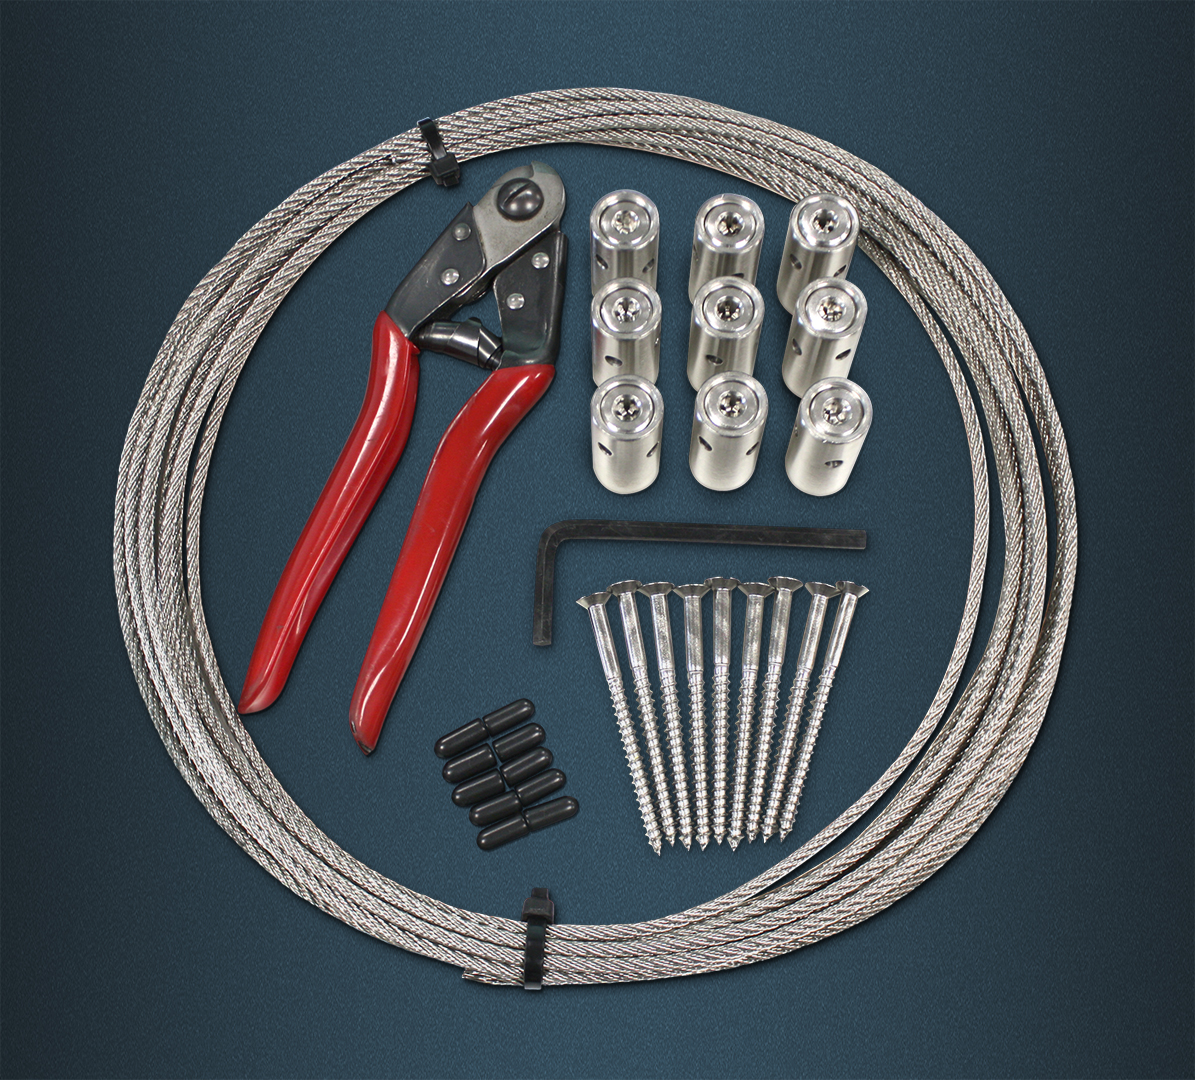 Wire Rope Green Wall Kit Contence - Length of Wire Rope, Hubs, Wood Screws, rubber end caps, hex key, wire rope cutters